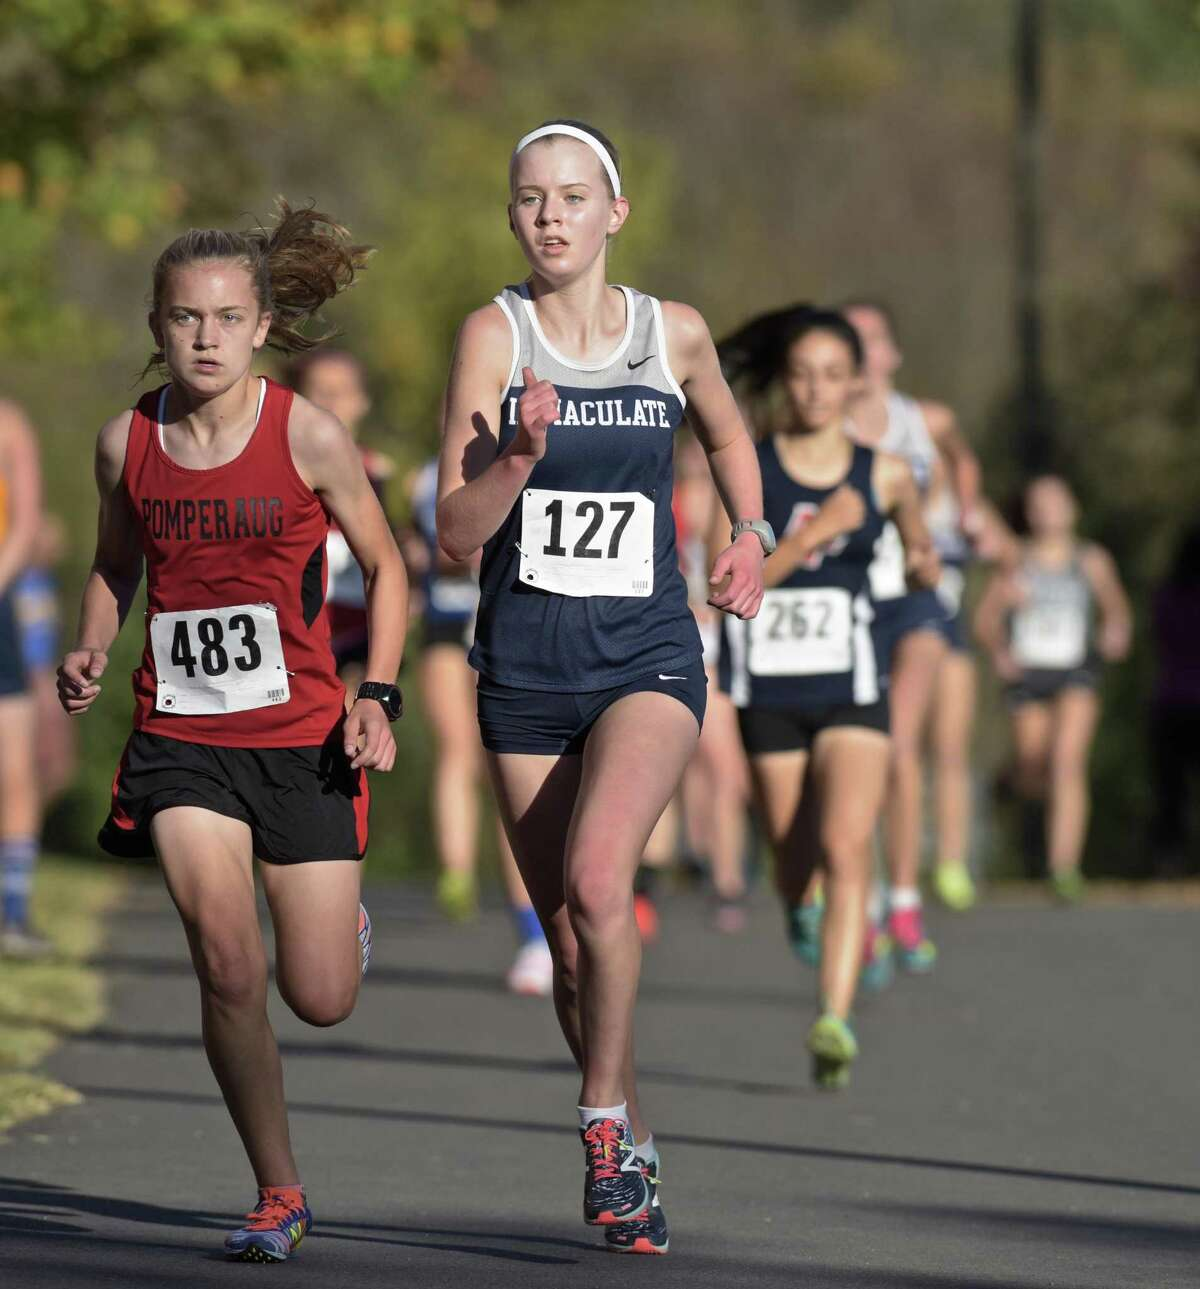 Pomperaug's Katherine Wiser (483) and Immaculate's Angela Saidman lead the pack in the SWC girls cross country championships Wednesday at Bethel High School. Wiser finished first and Saidman finished second in the championship race.